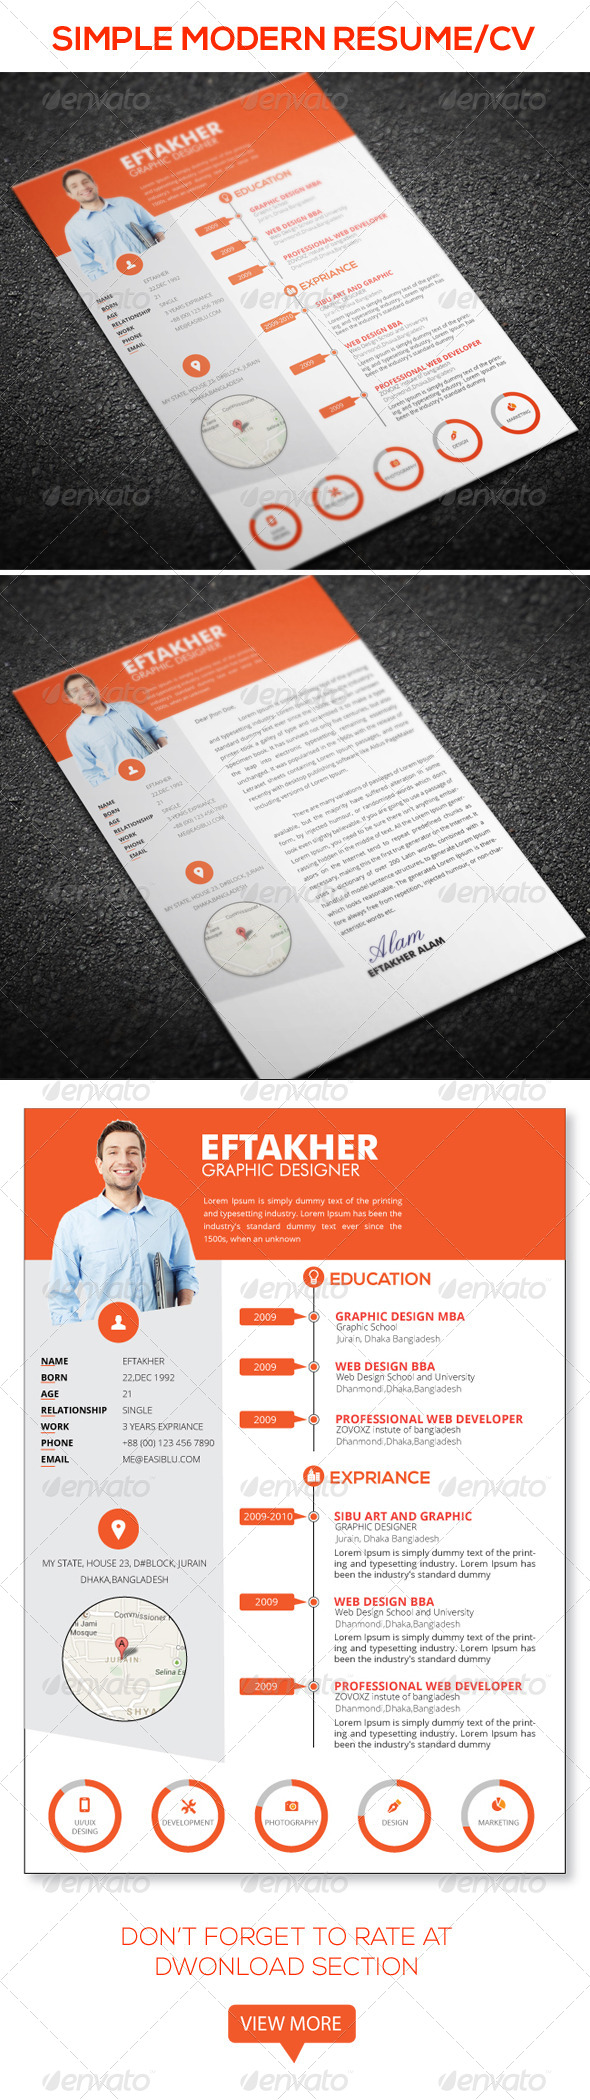 Simple Resume+ - http://graphicriver.net/item/simple-resume/6700574?WT.ac=search_thumb&WT.z_author=easiblu